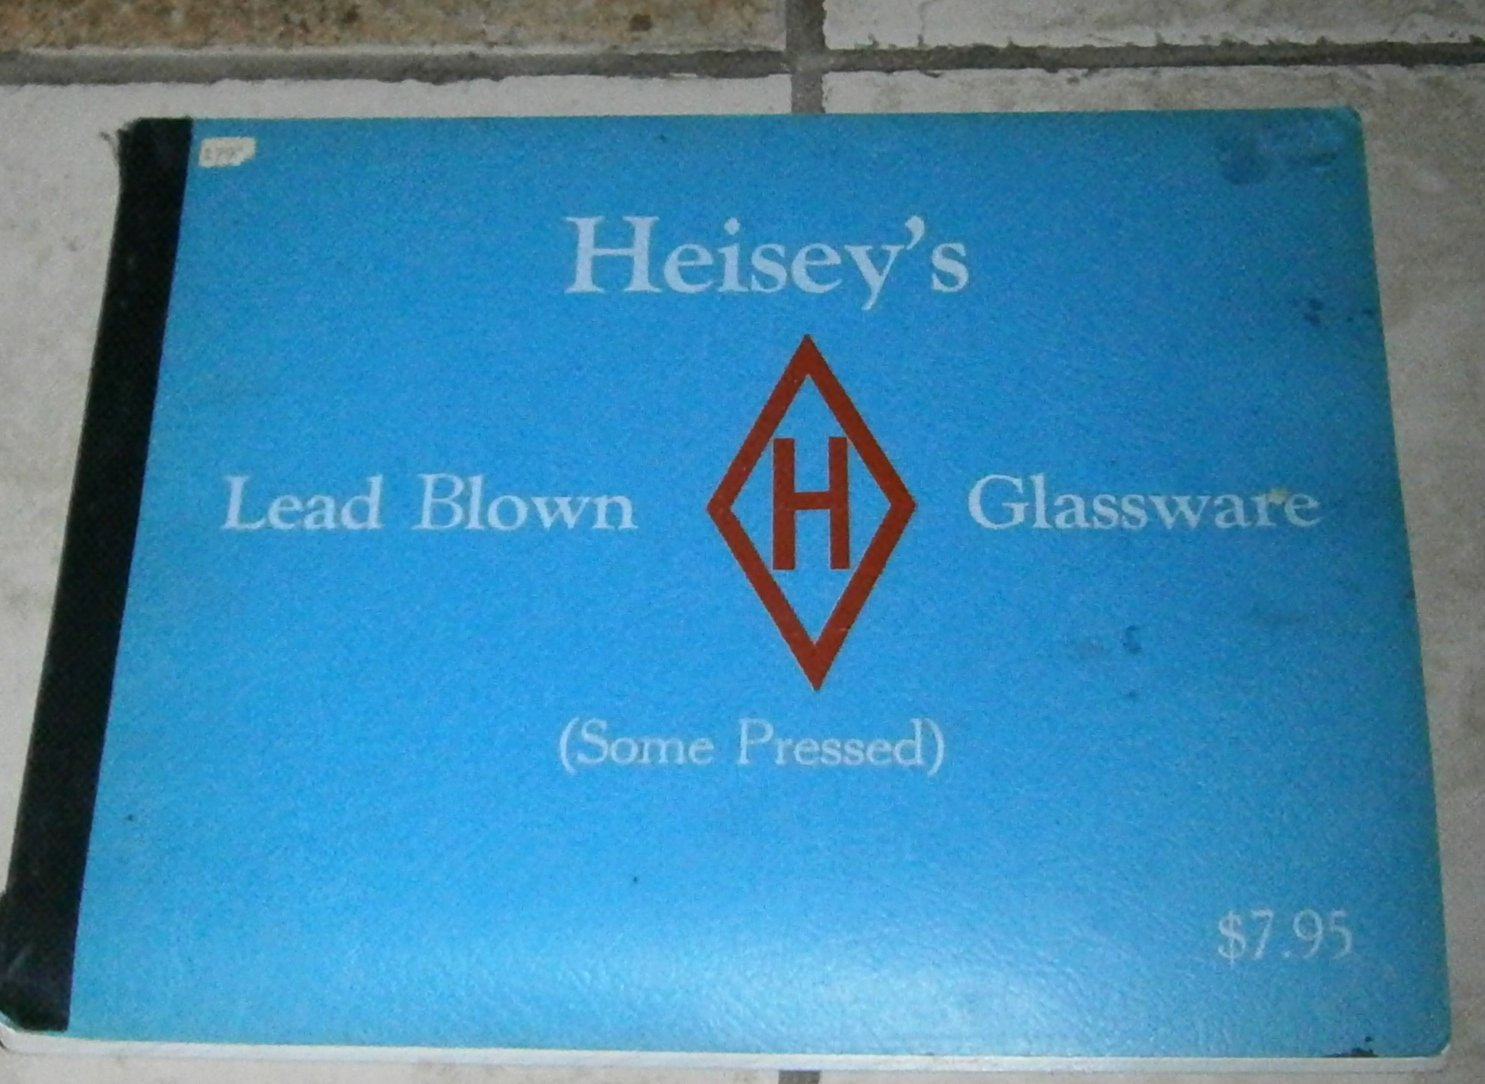 Heisey's Lead Blown Glassware (some Pressed)